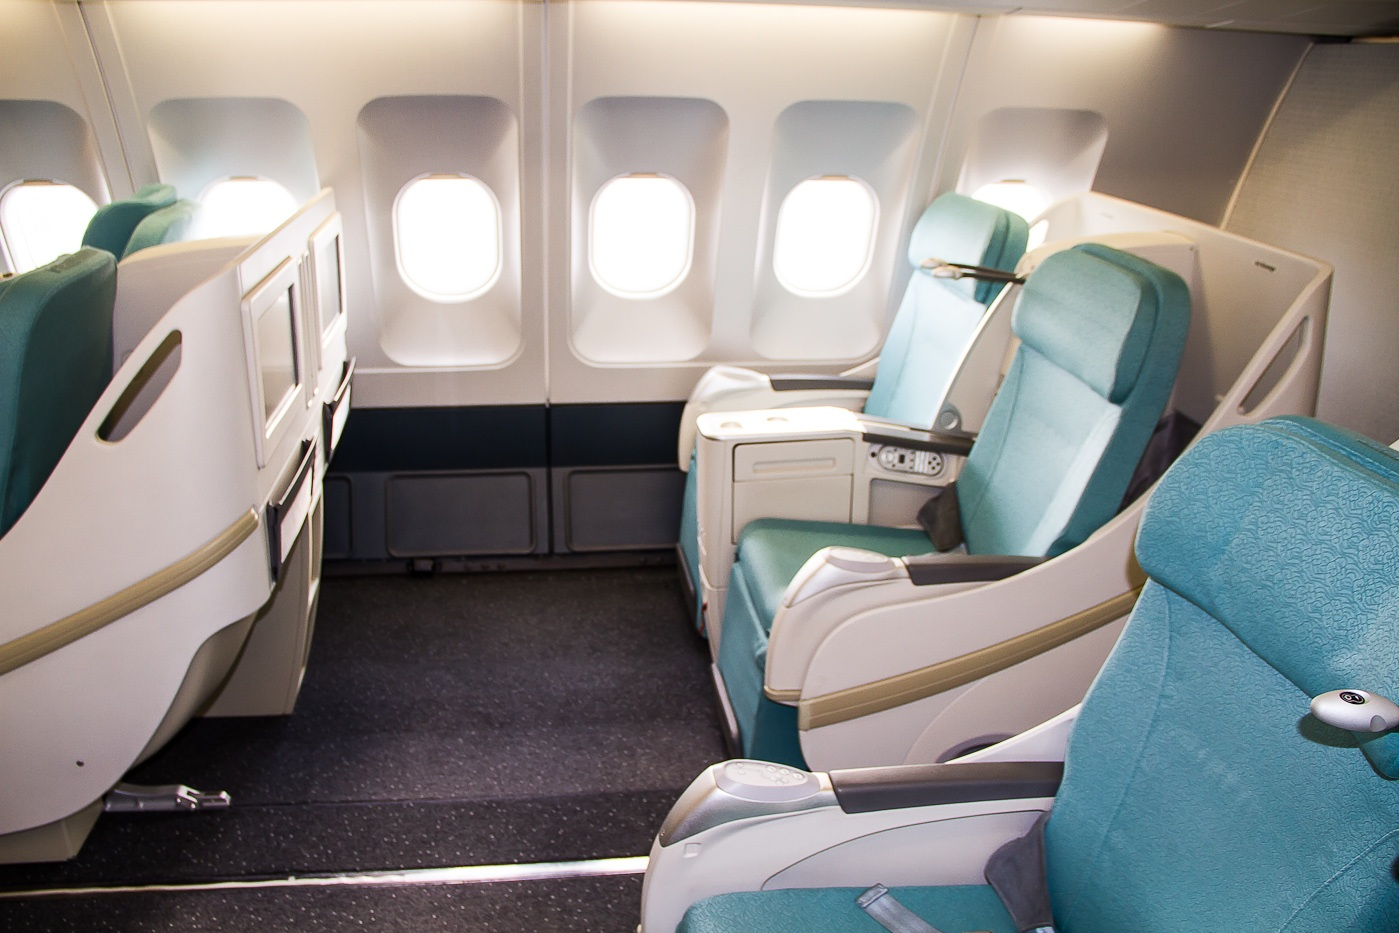 CSA Czech Airlines business class